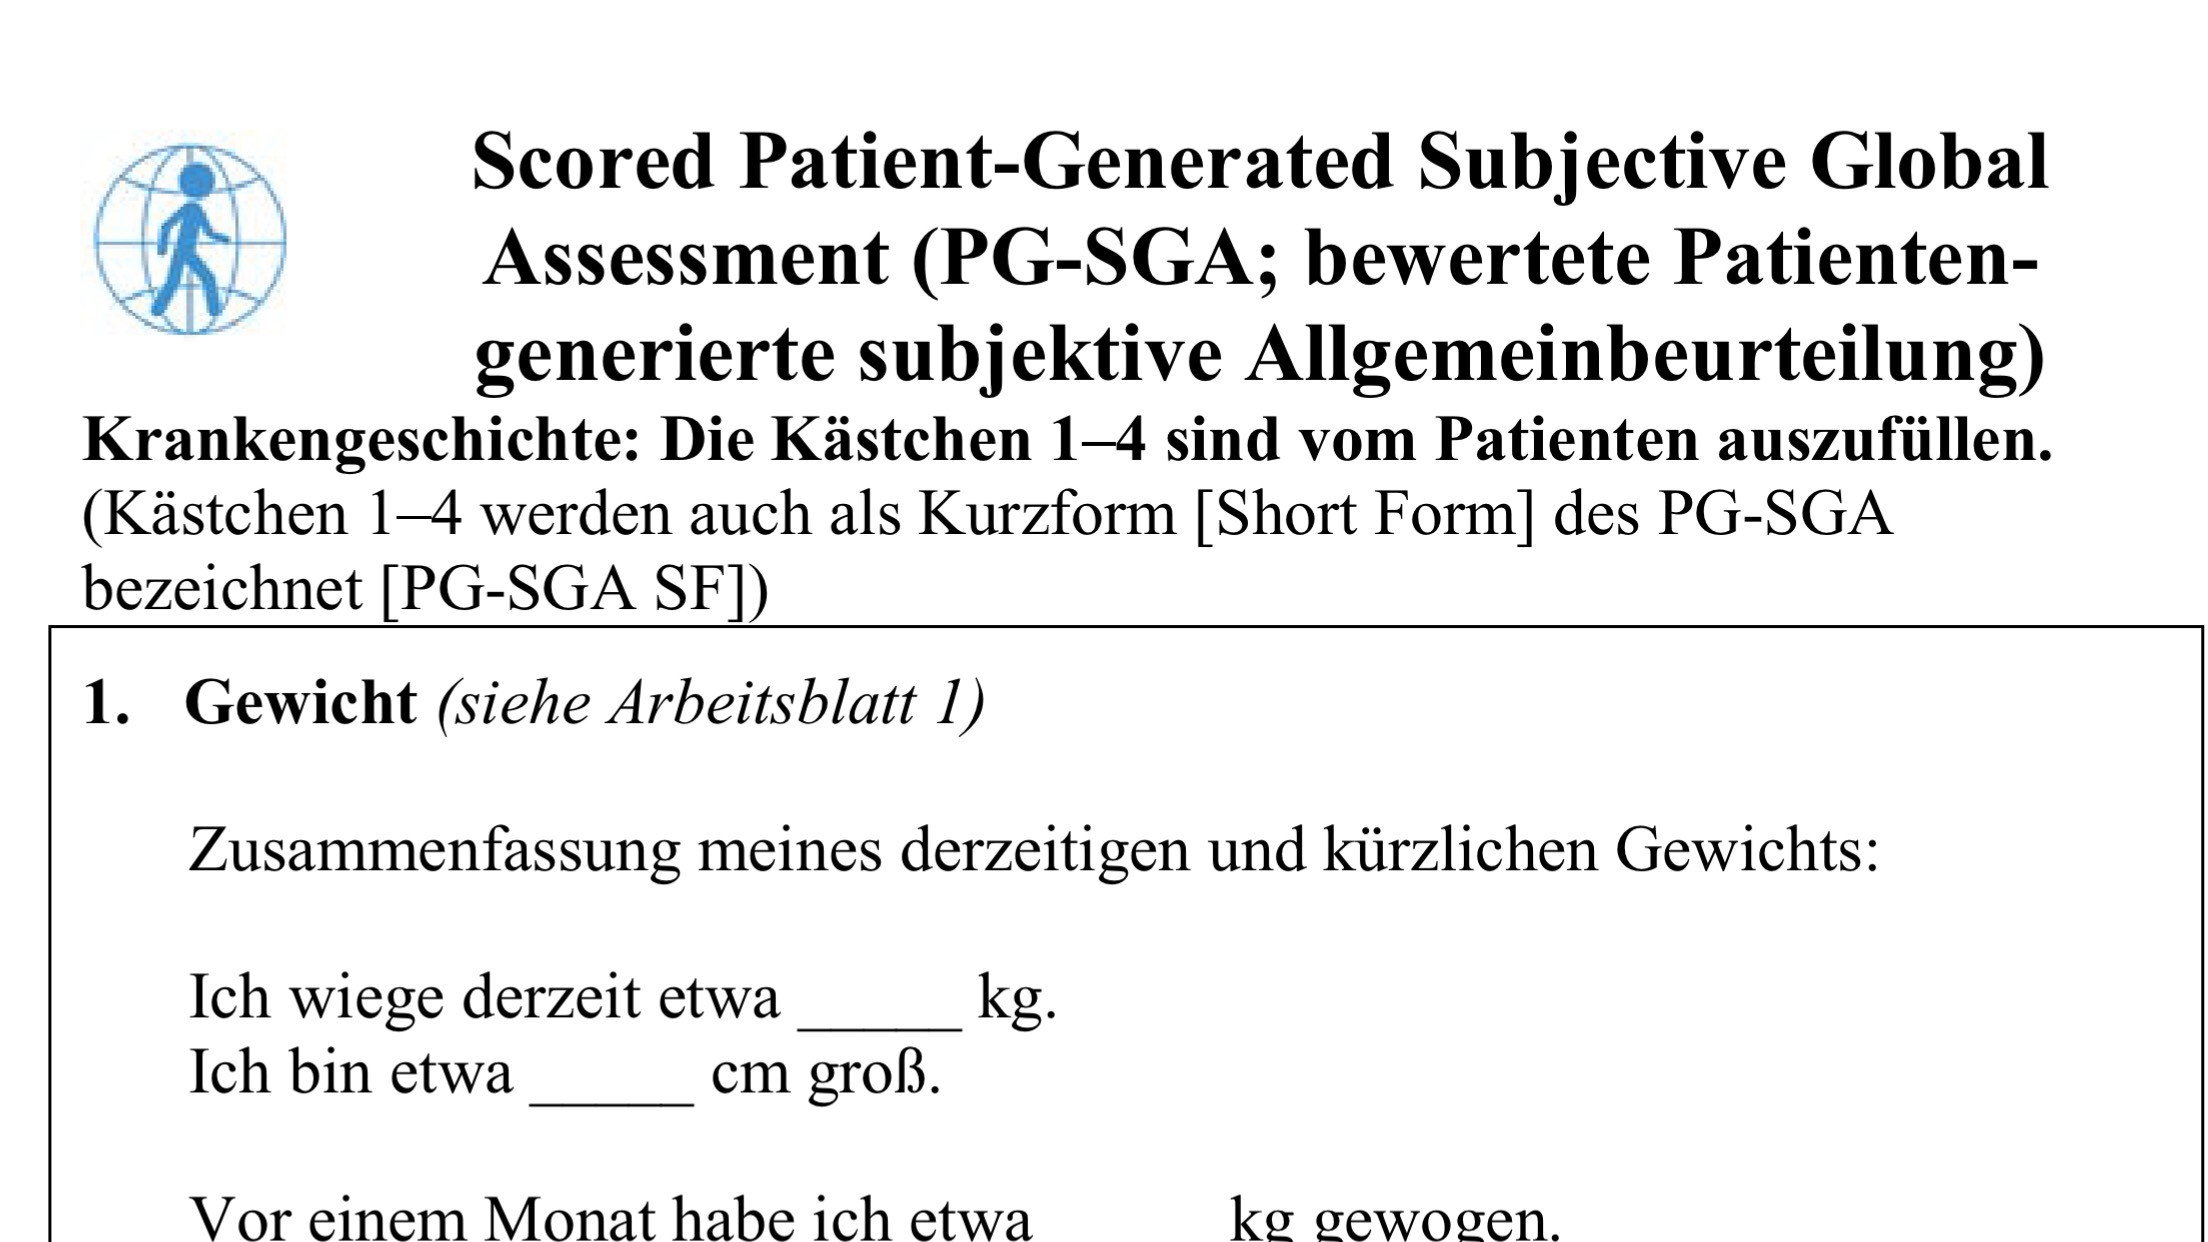 Call for participation in pilot testing of German PG-SGA | Pt-Global